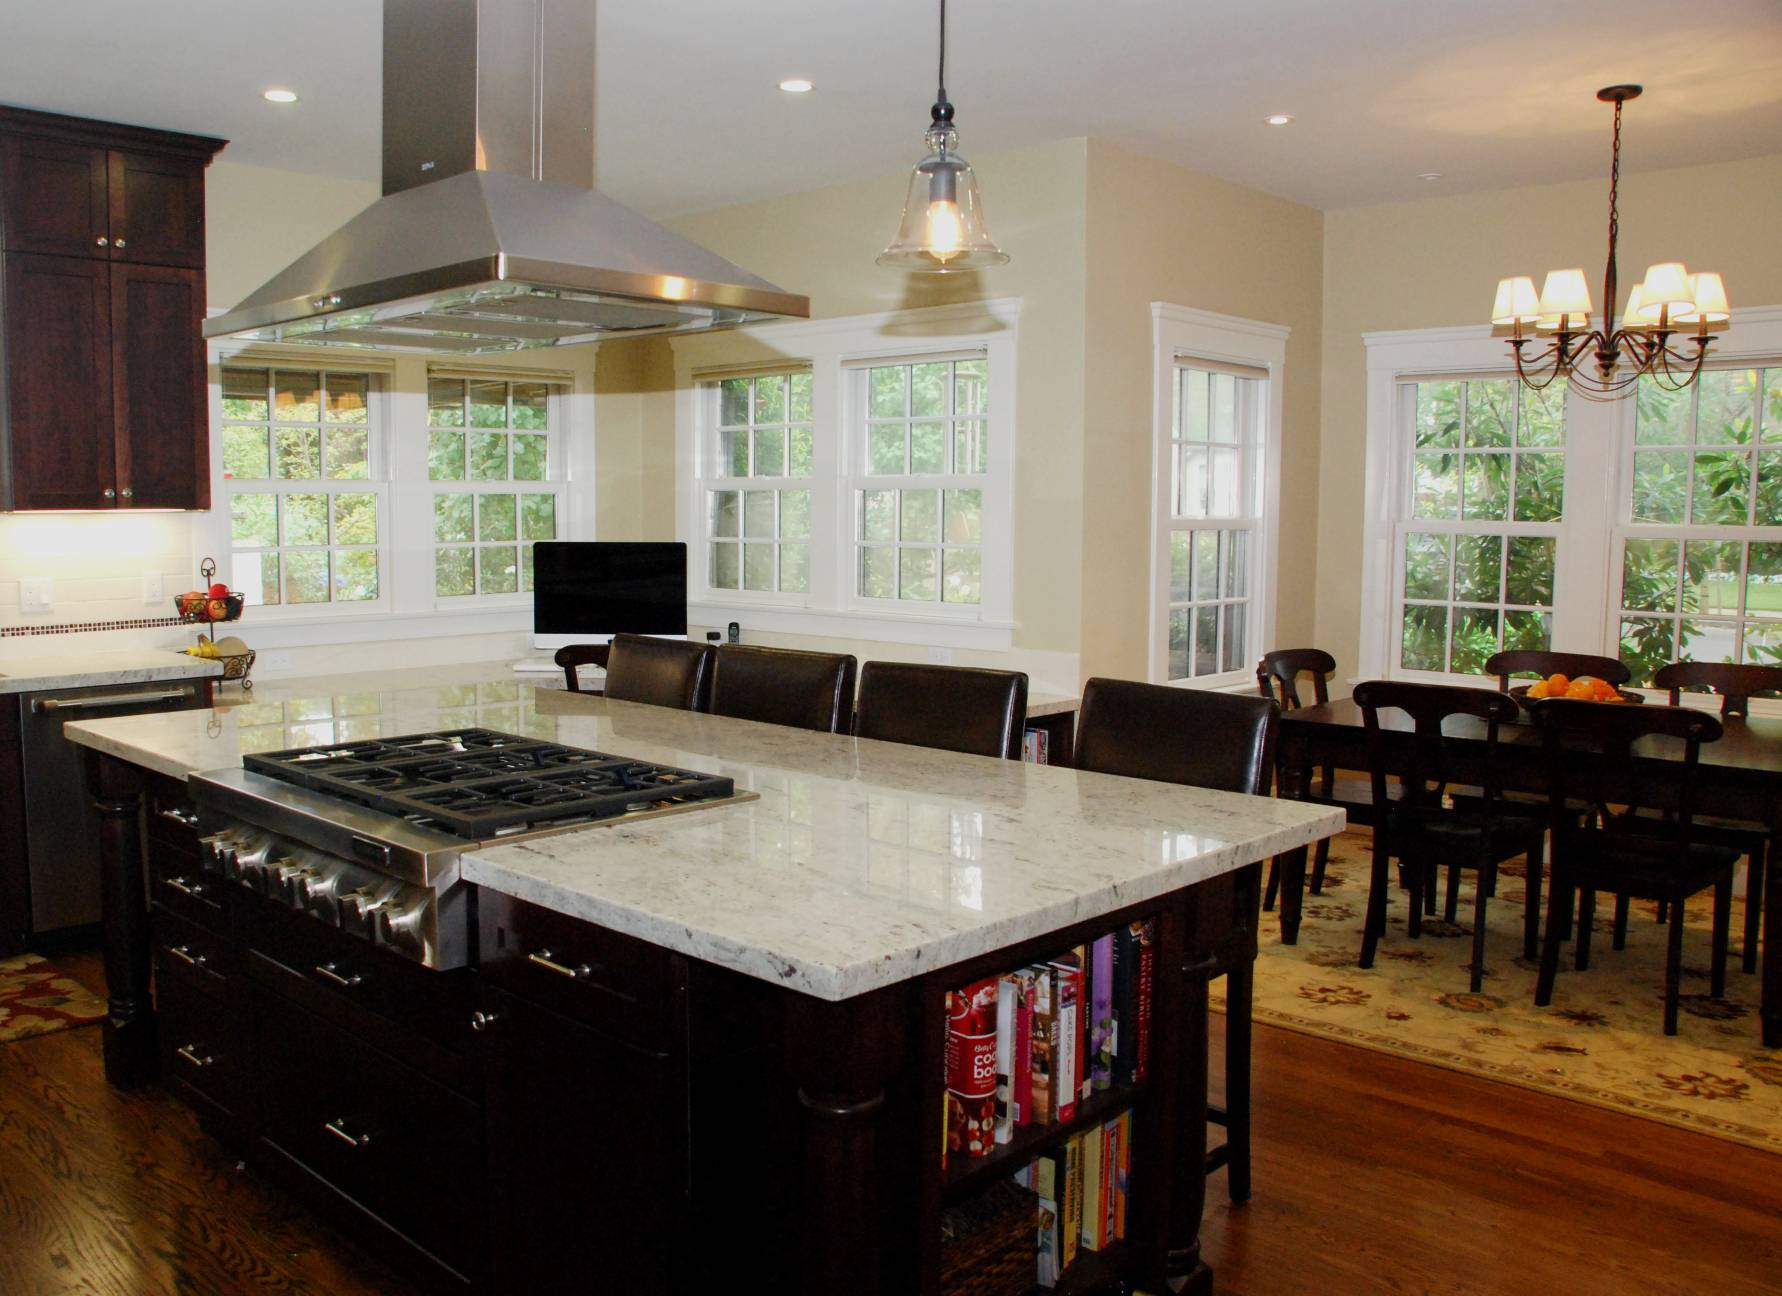 large kitchen with marble and dining area, Architect work, Interior design work, Palo Alto